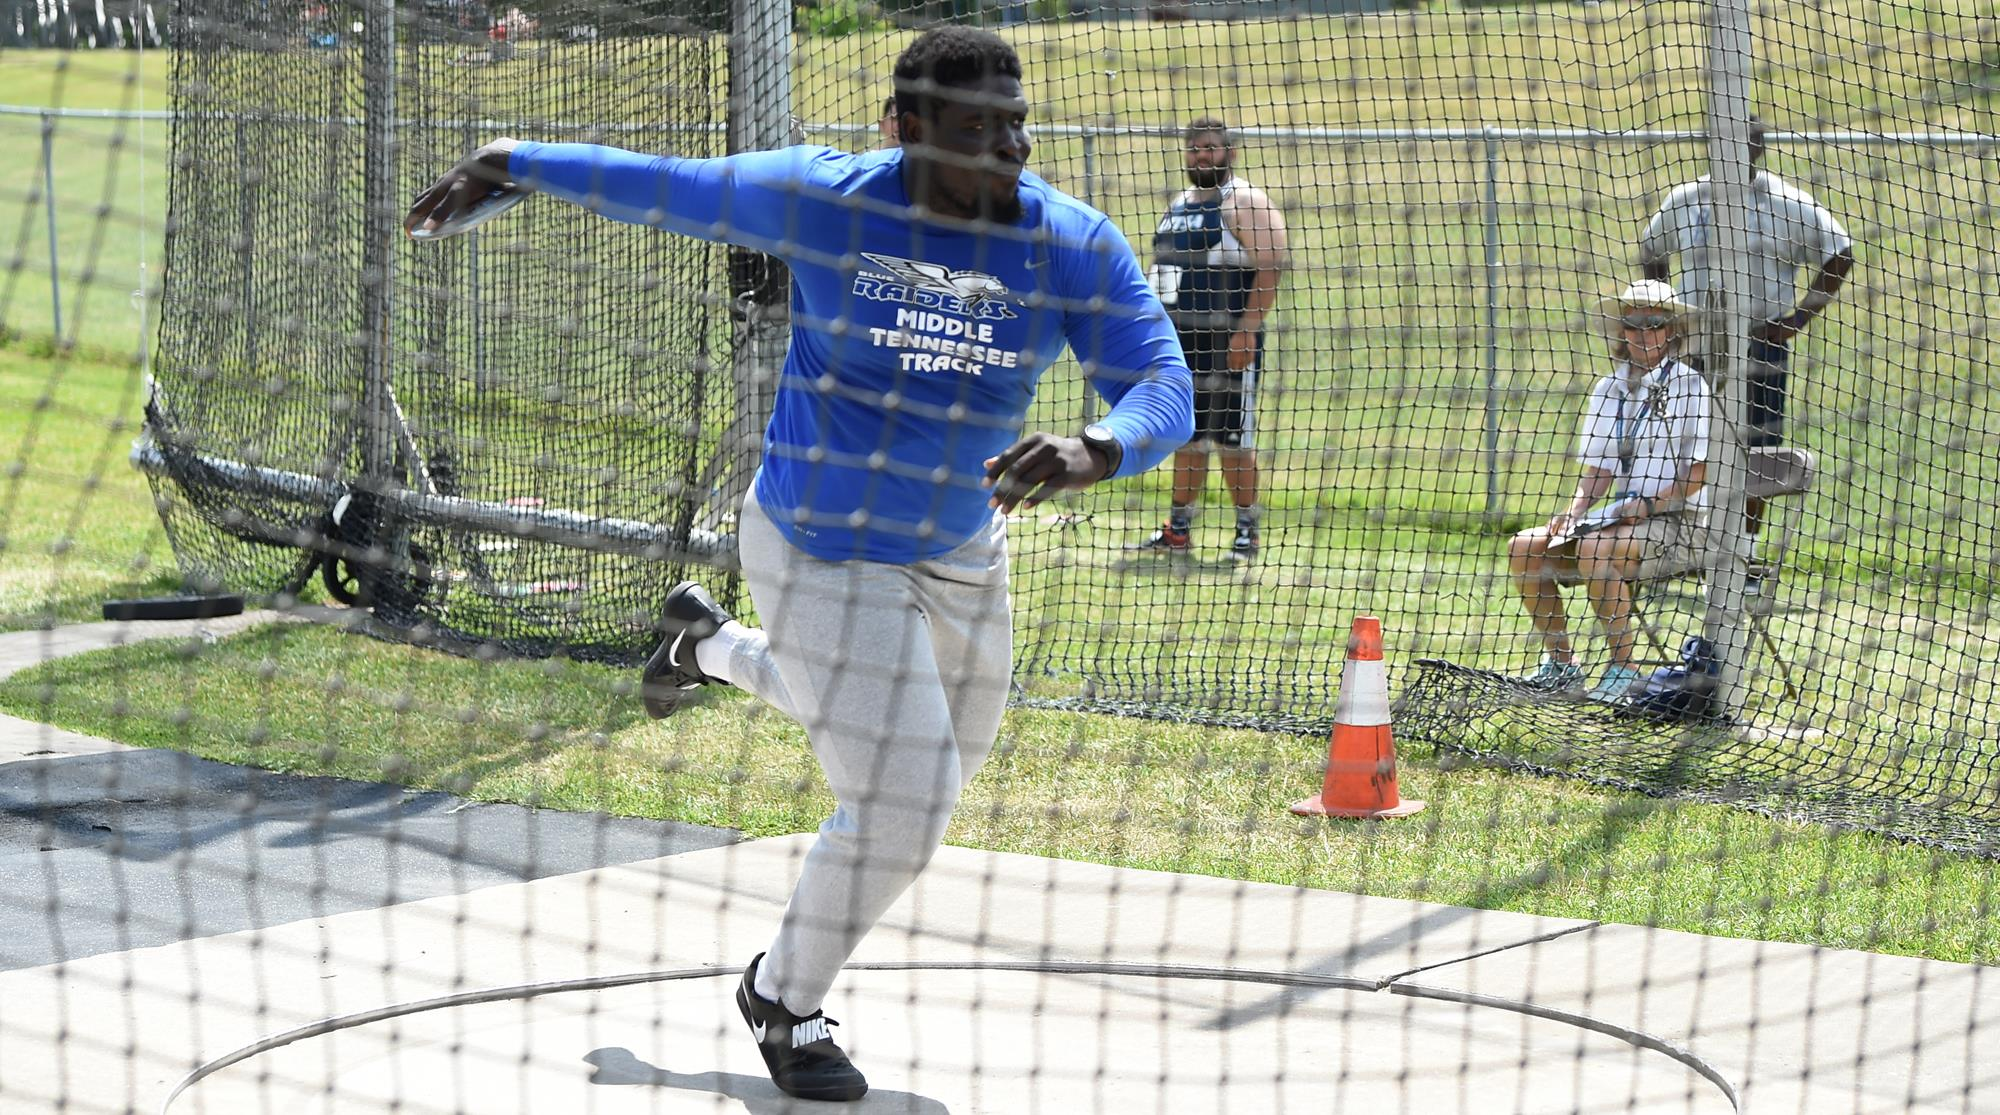 164e39a04 Isaac Odugbesan - Track & Field/Cross Country - Middle Tennessee ...